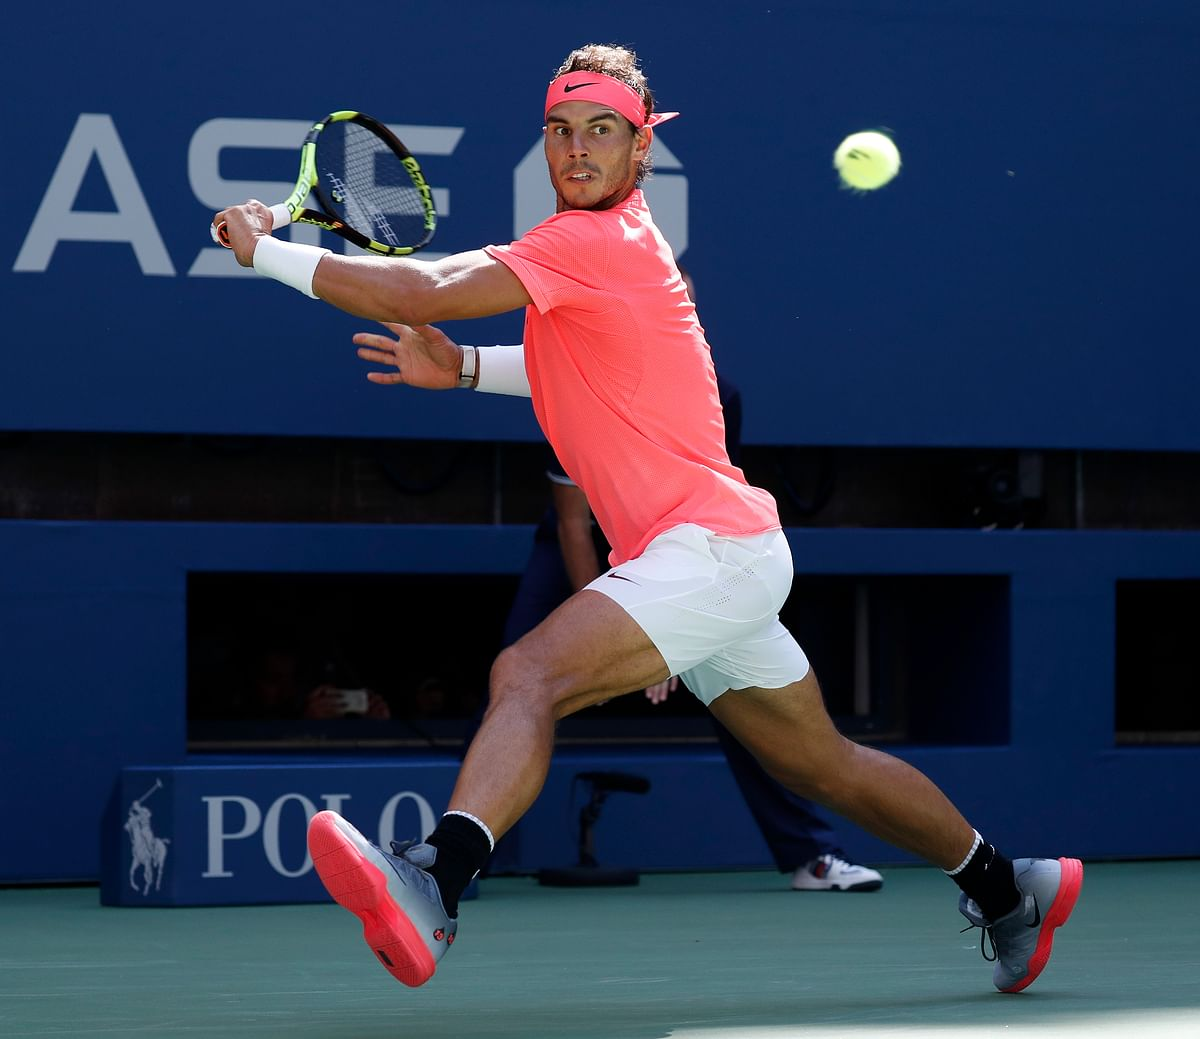 Rafael Nadal plays a shot during his fourth round match.